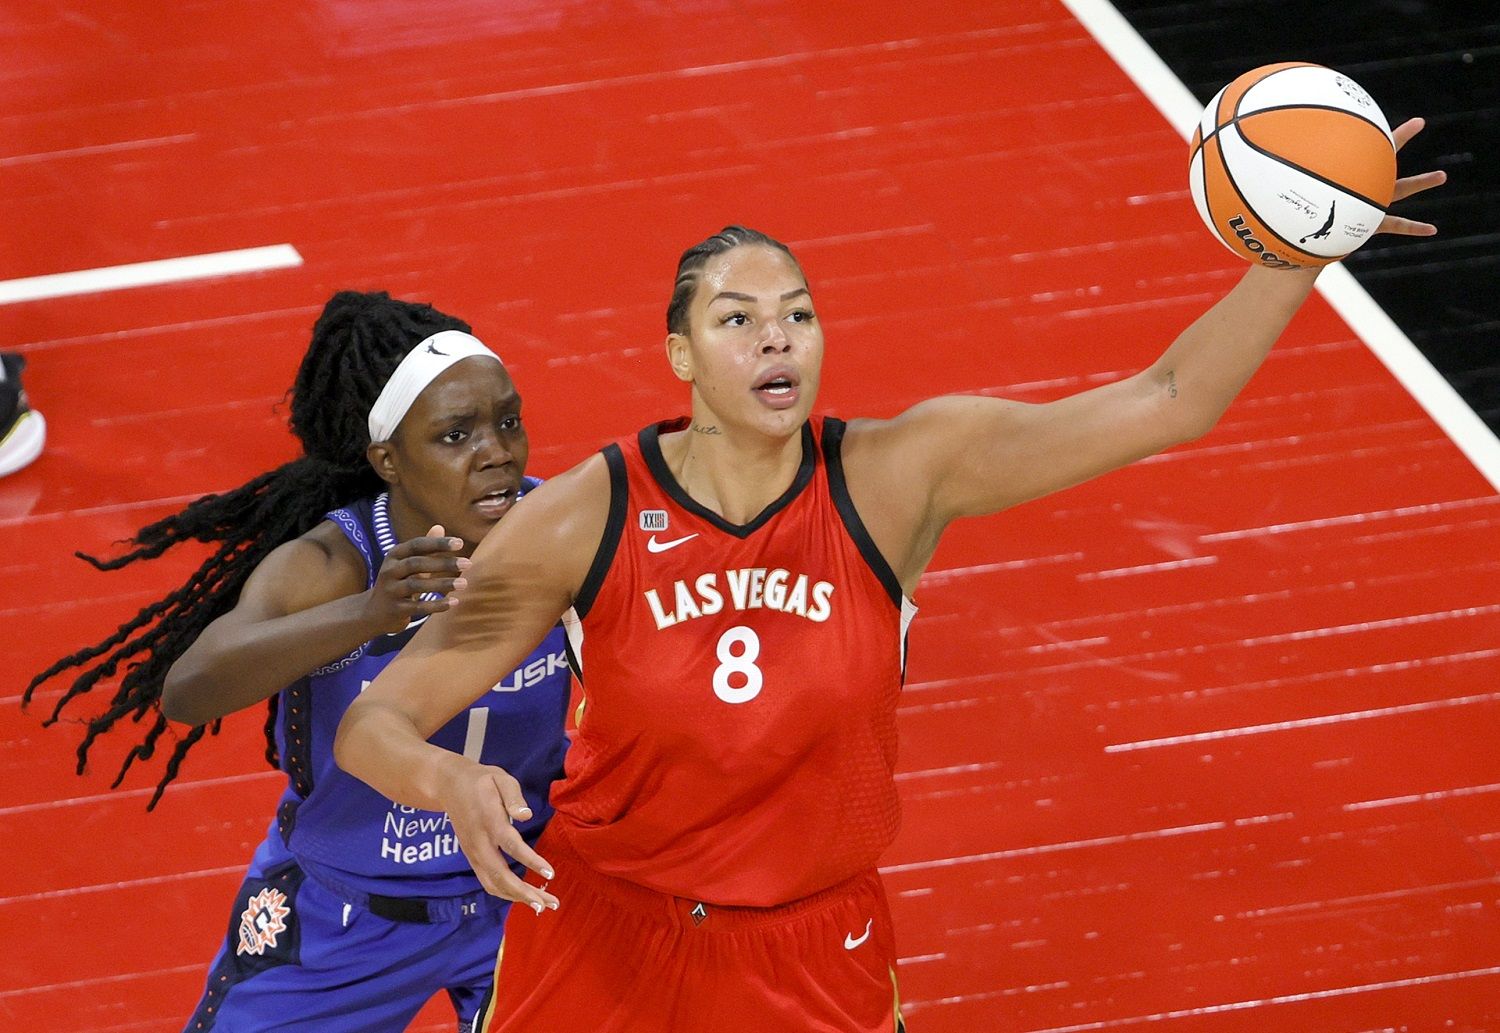 Liz Cambage of the Las Vegas Aces catches a pass under pressure from Beatrice Mompremier of the Connecticut Sun during their game on May 23, 2021 in Las Vegas. | Ethan Miller/Getty Images